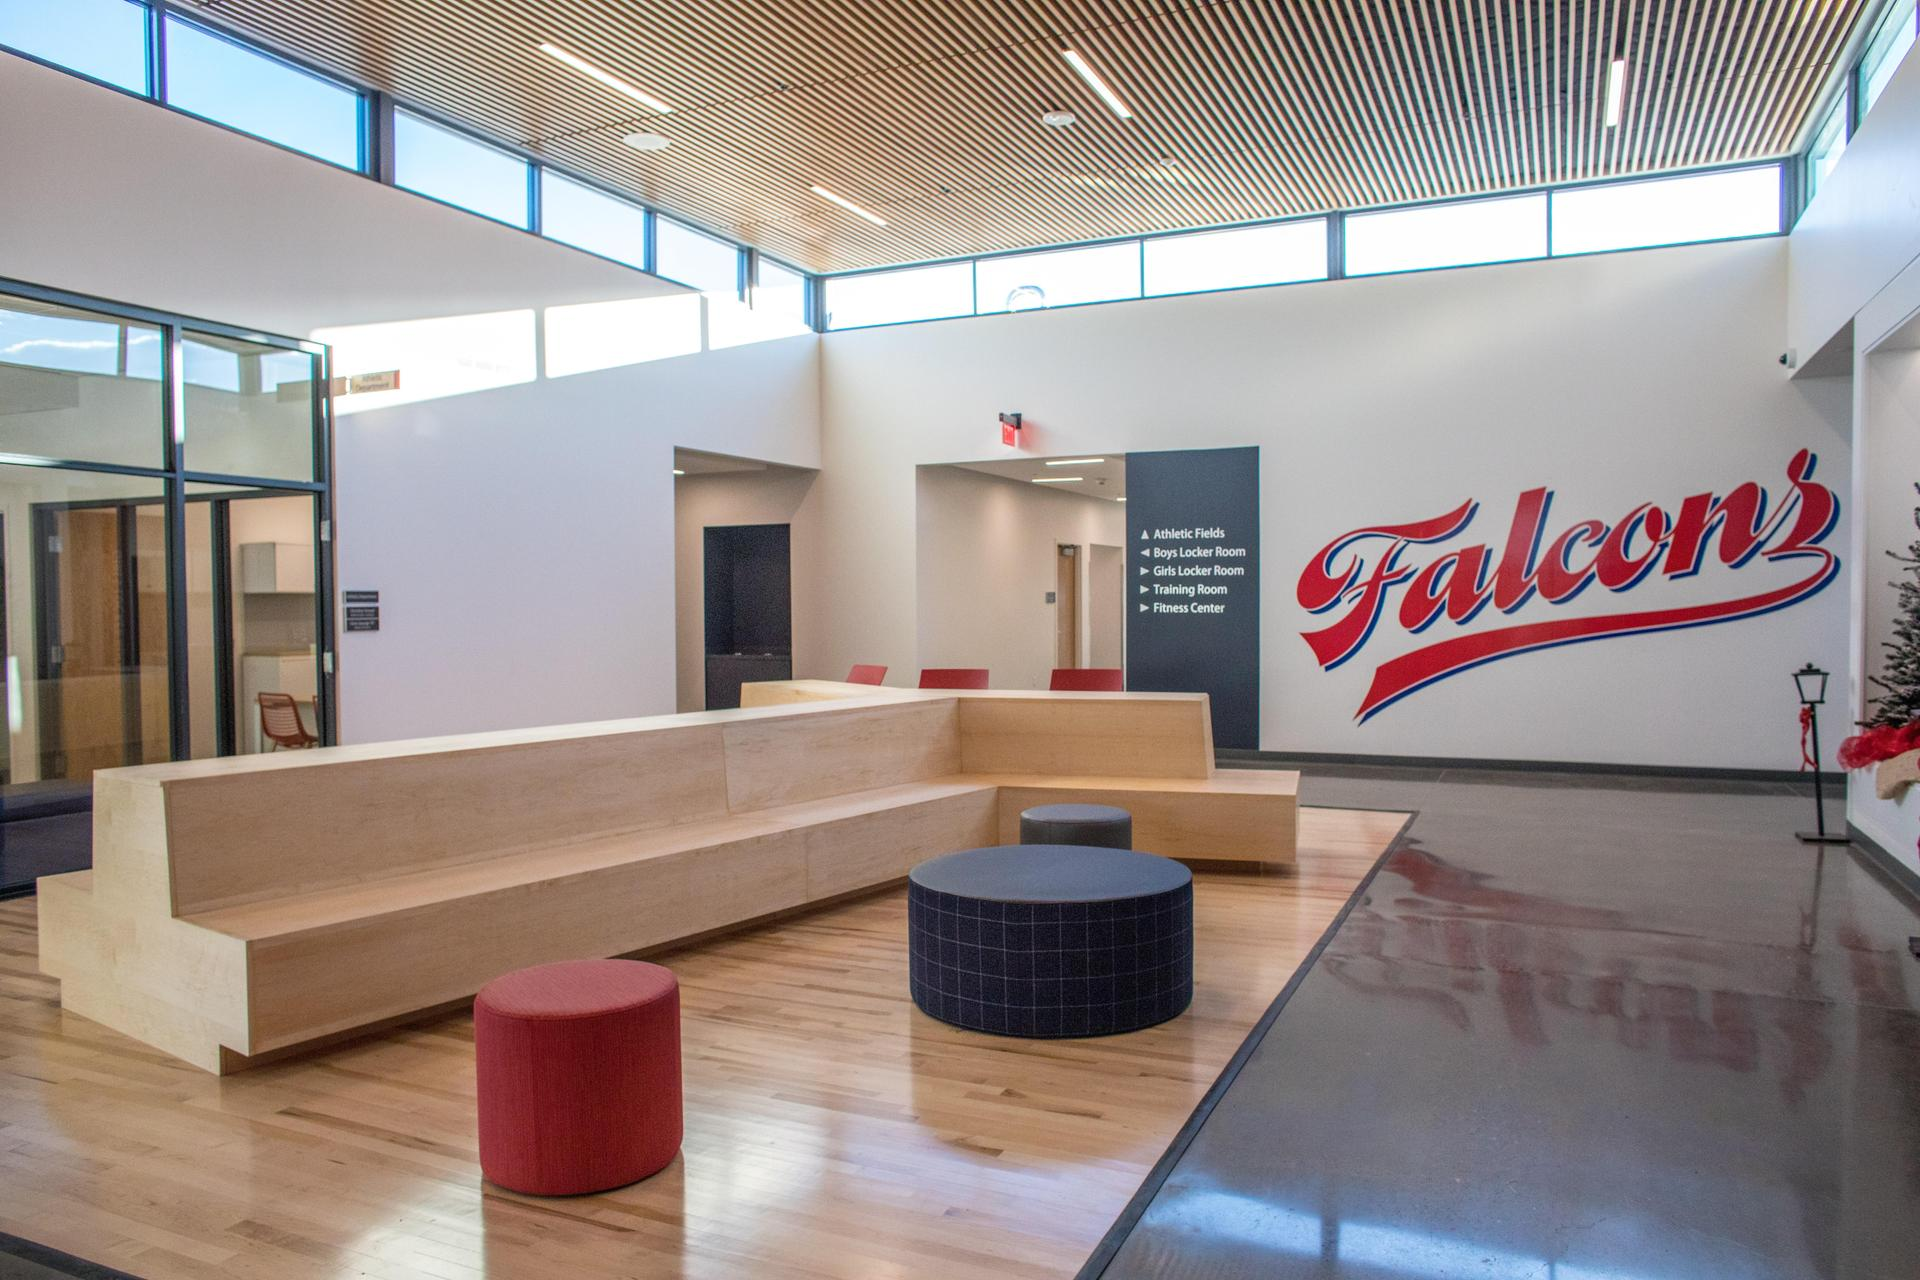 Saalfeld athletic center lobby with furniture and wall graphics